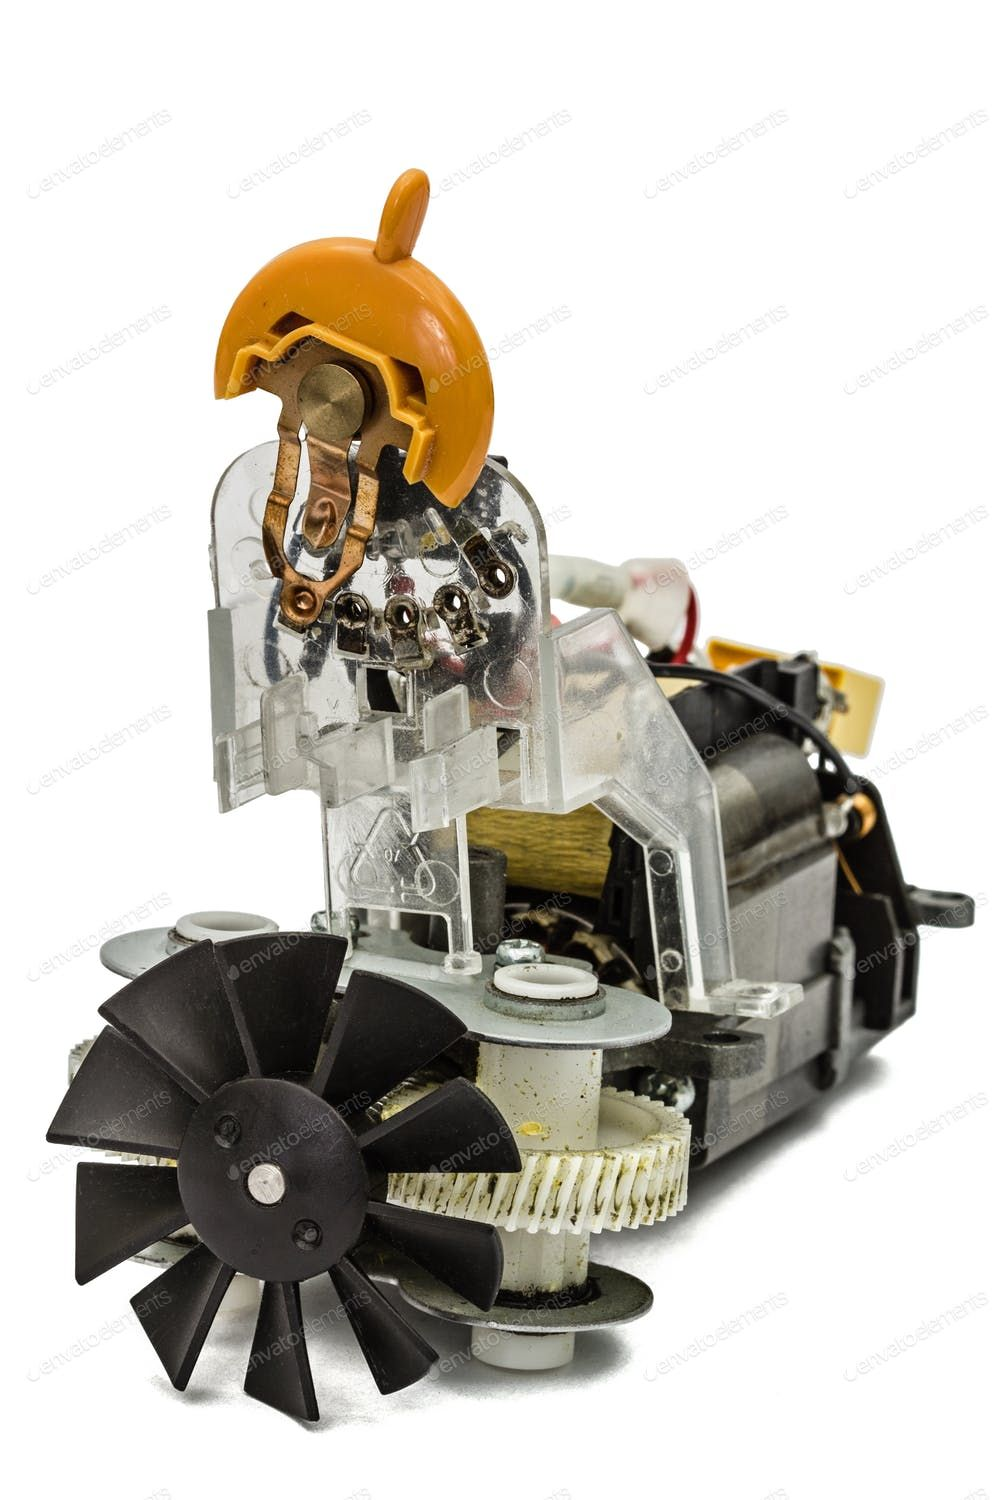 Small Electric Motor With Fan Isolated On White Background By Kostiuchenko S Photos